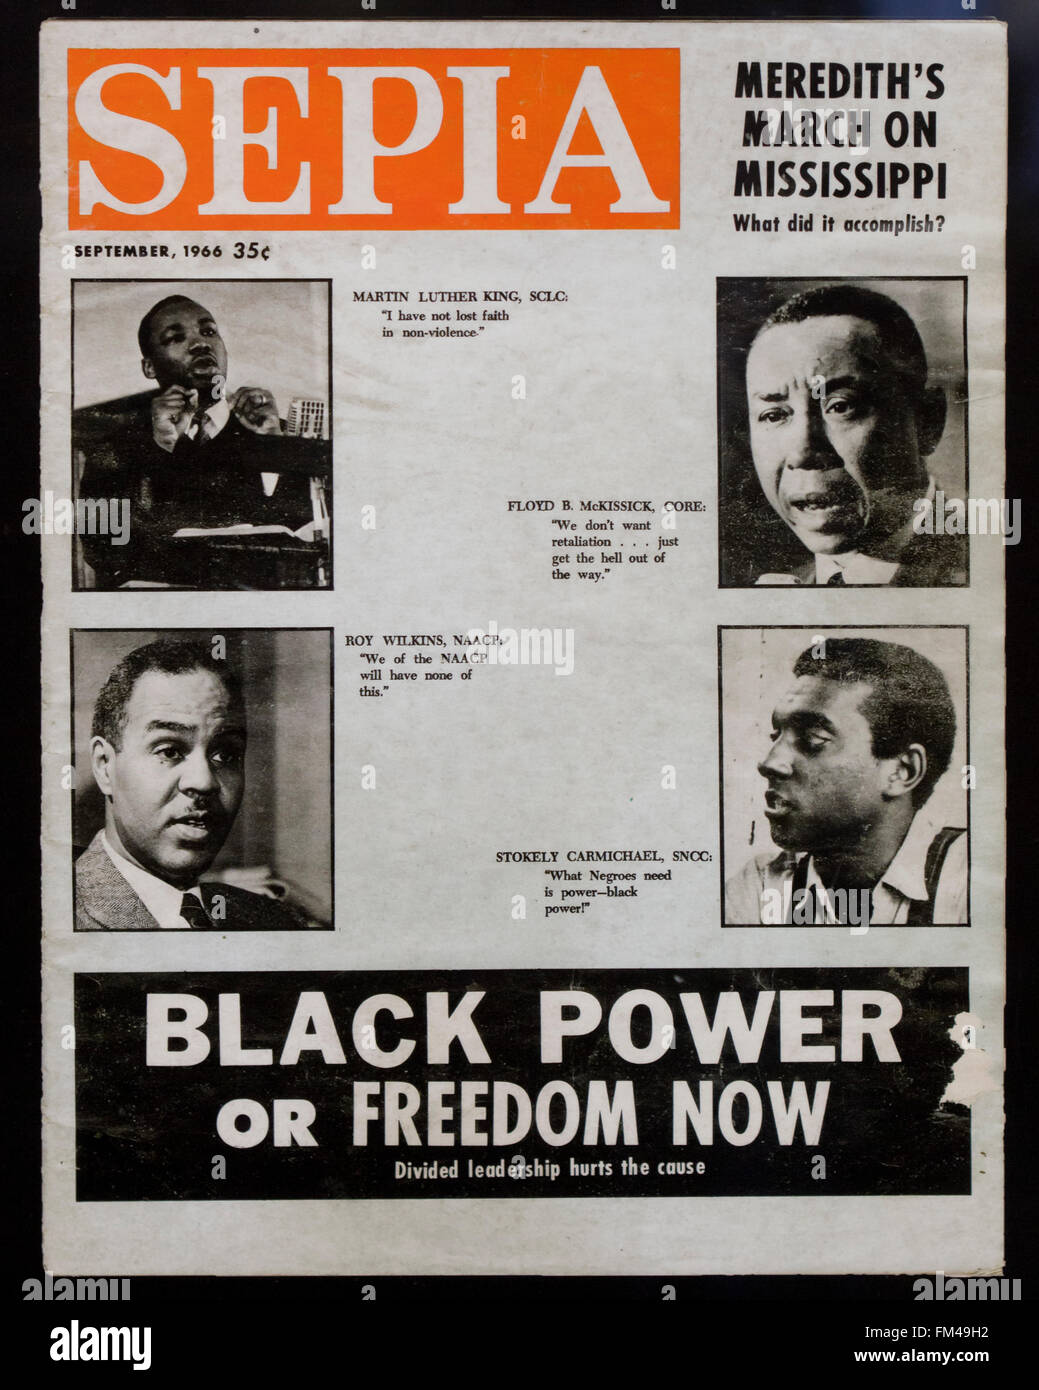 Sepia magazine cover, September 1966 issue (1960s civil rights movement) - USA - Stock Image